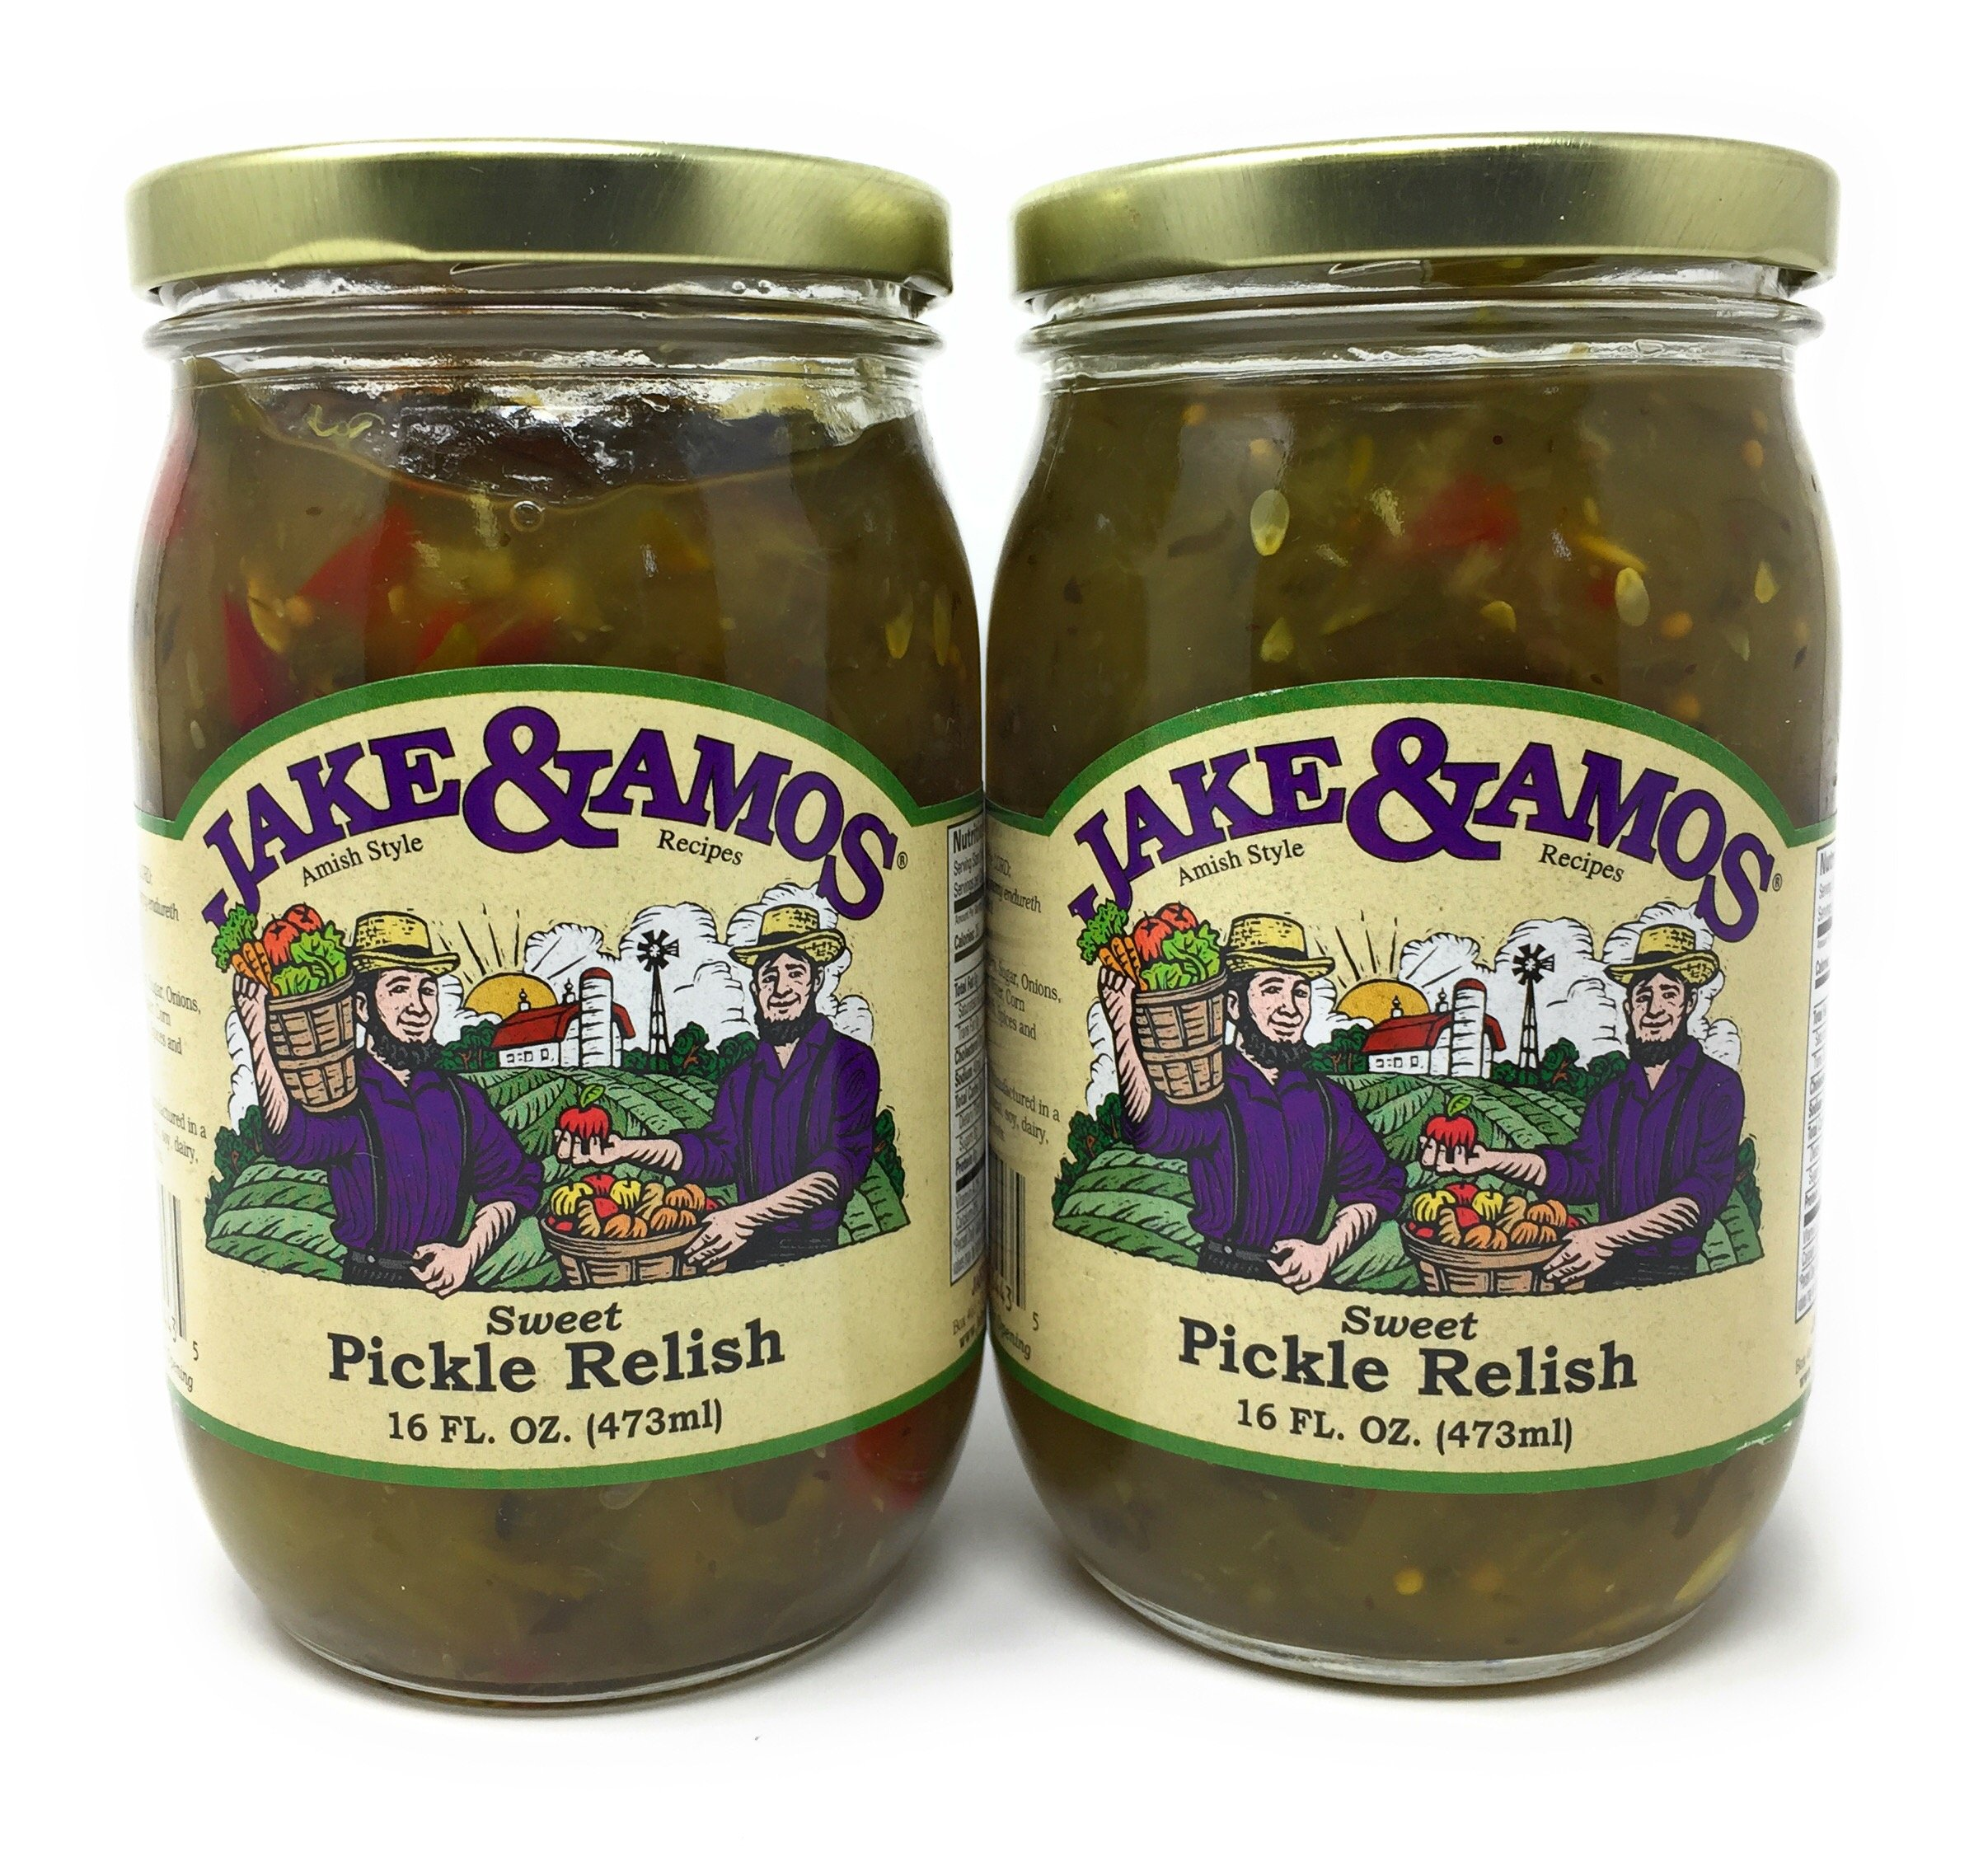 Jake & Amos Sweet Pickle Relish / 2 - 16 Oz. Jars